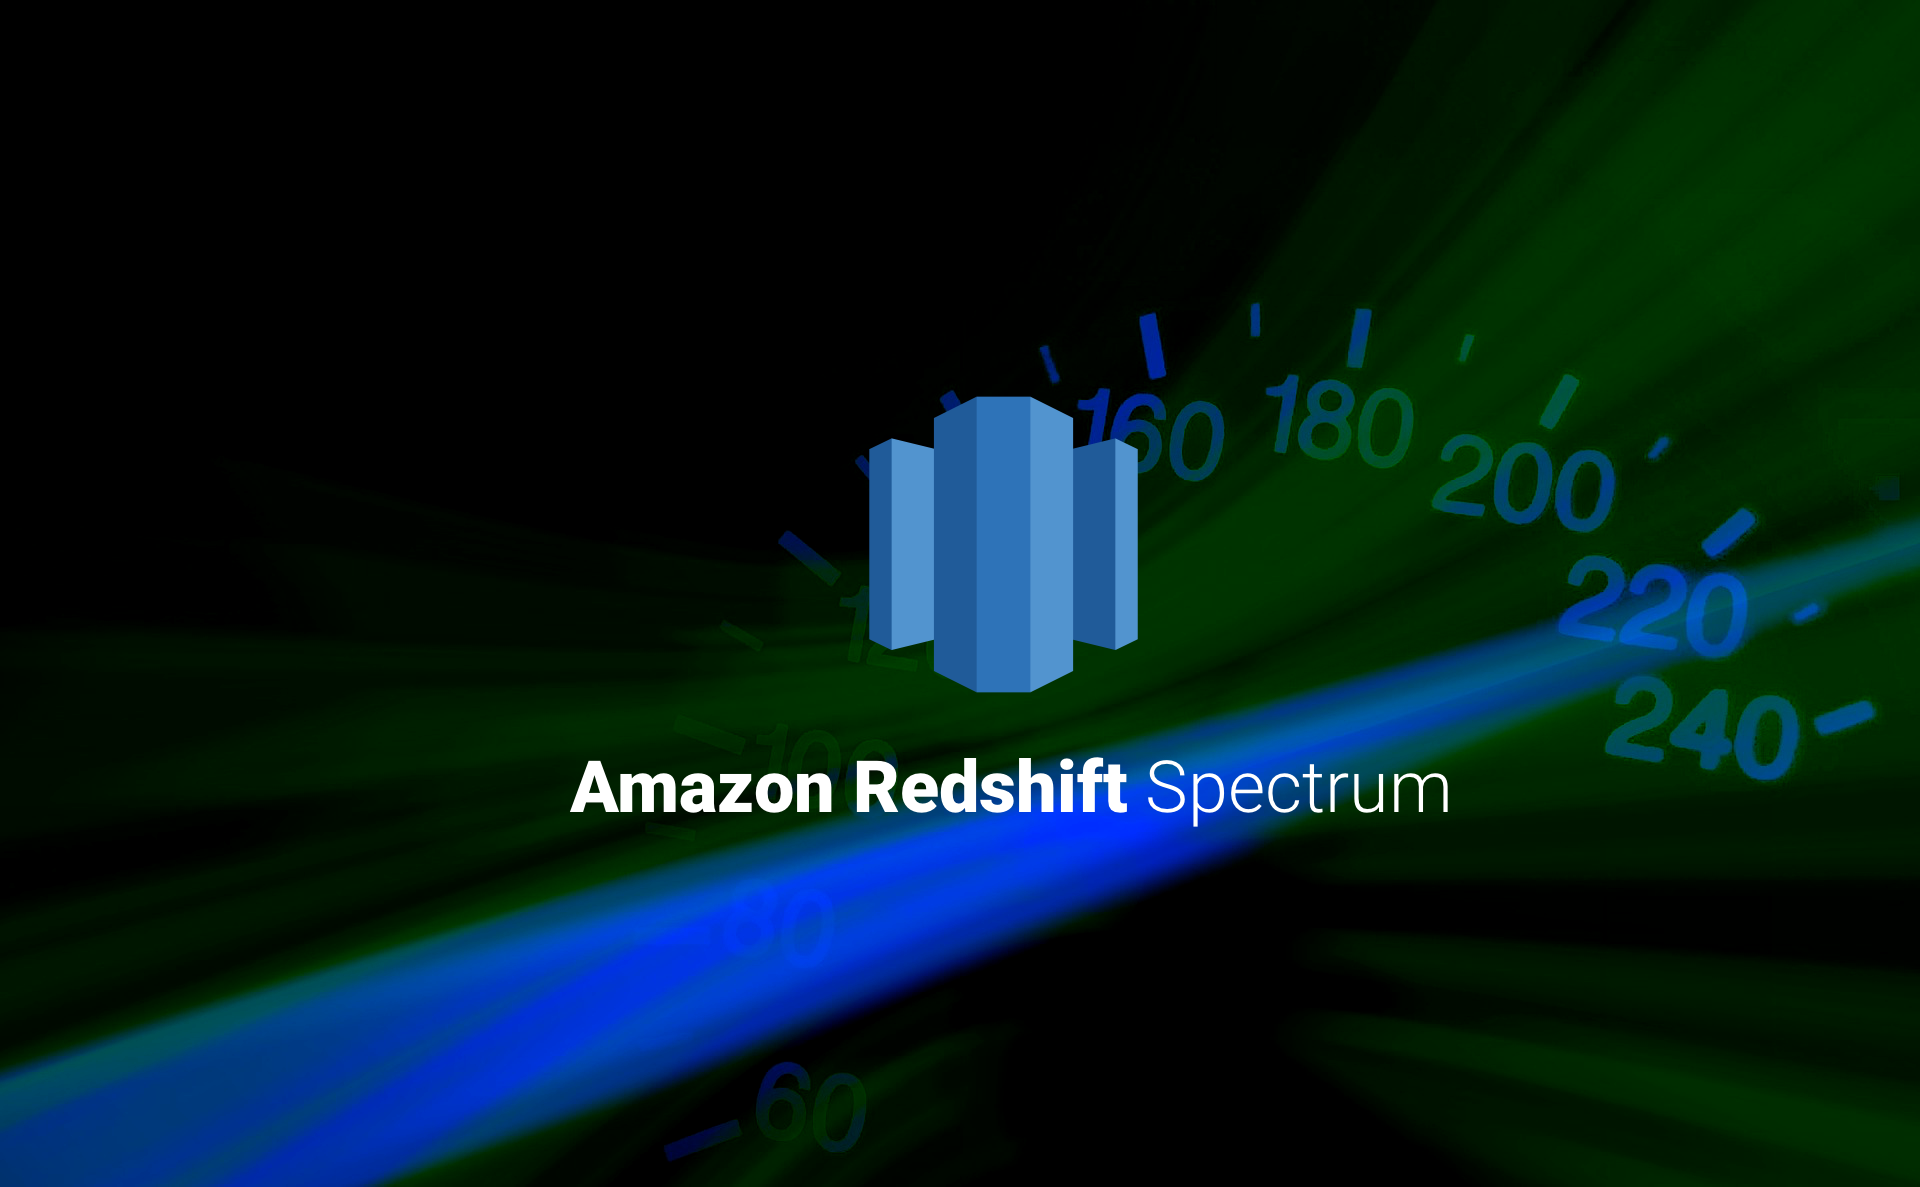 Introduction To Amazon Redshift Spectrum — Redefining Performance